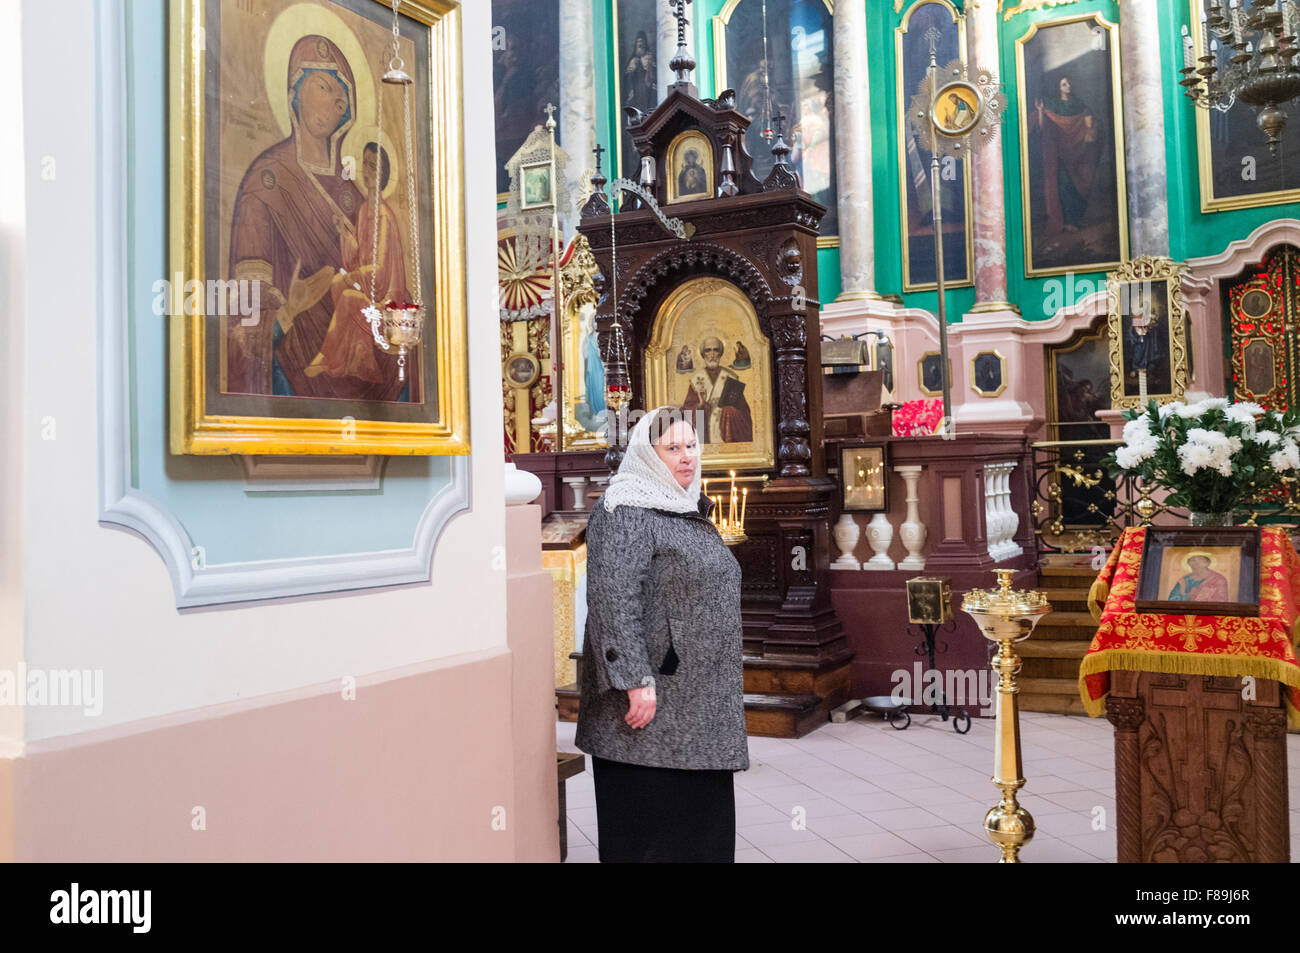 Woman inside the Orthodox Church of the Holy Spirit. Vilnius, Lithuania, Europe - Stock Image